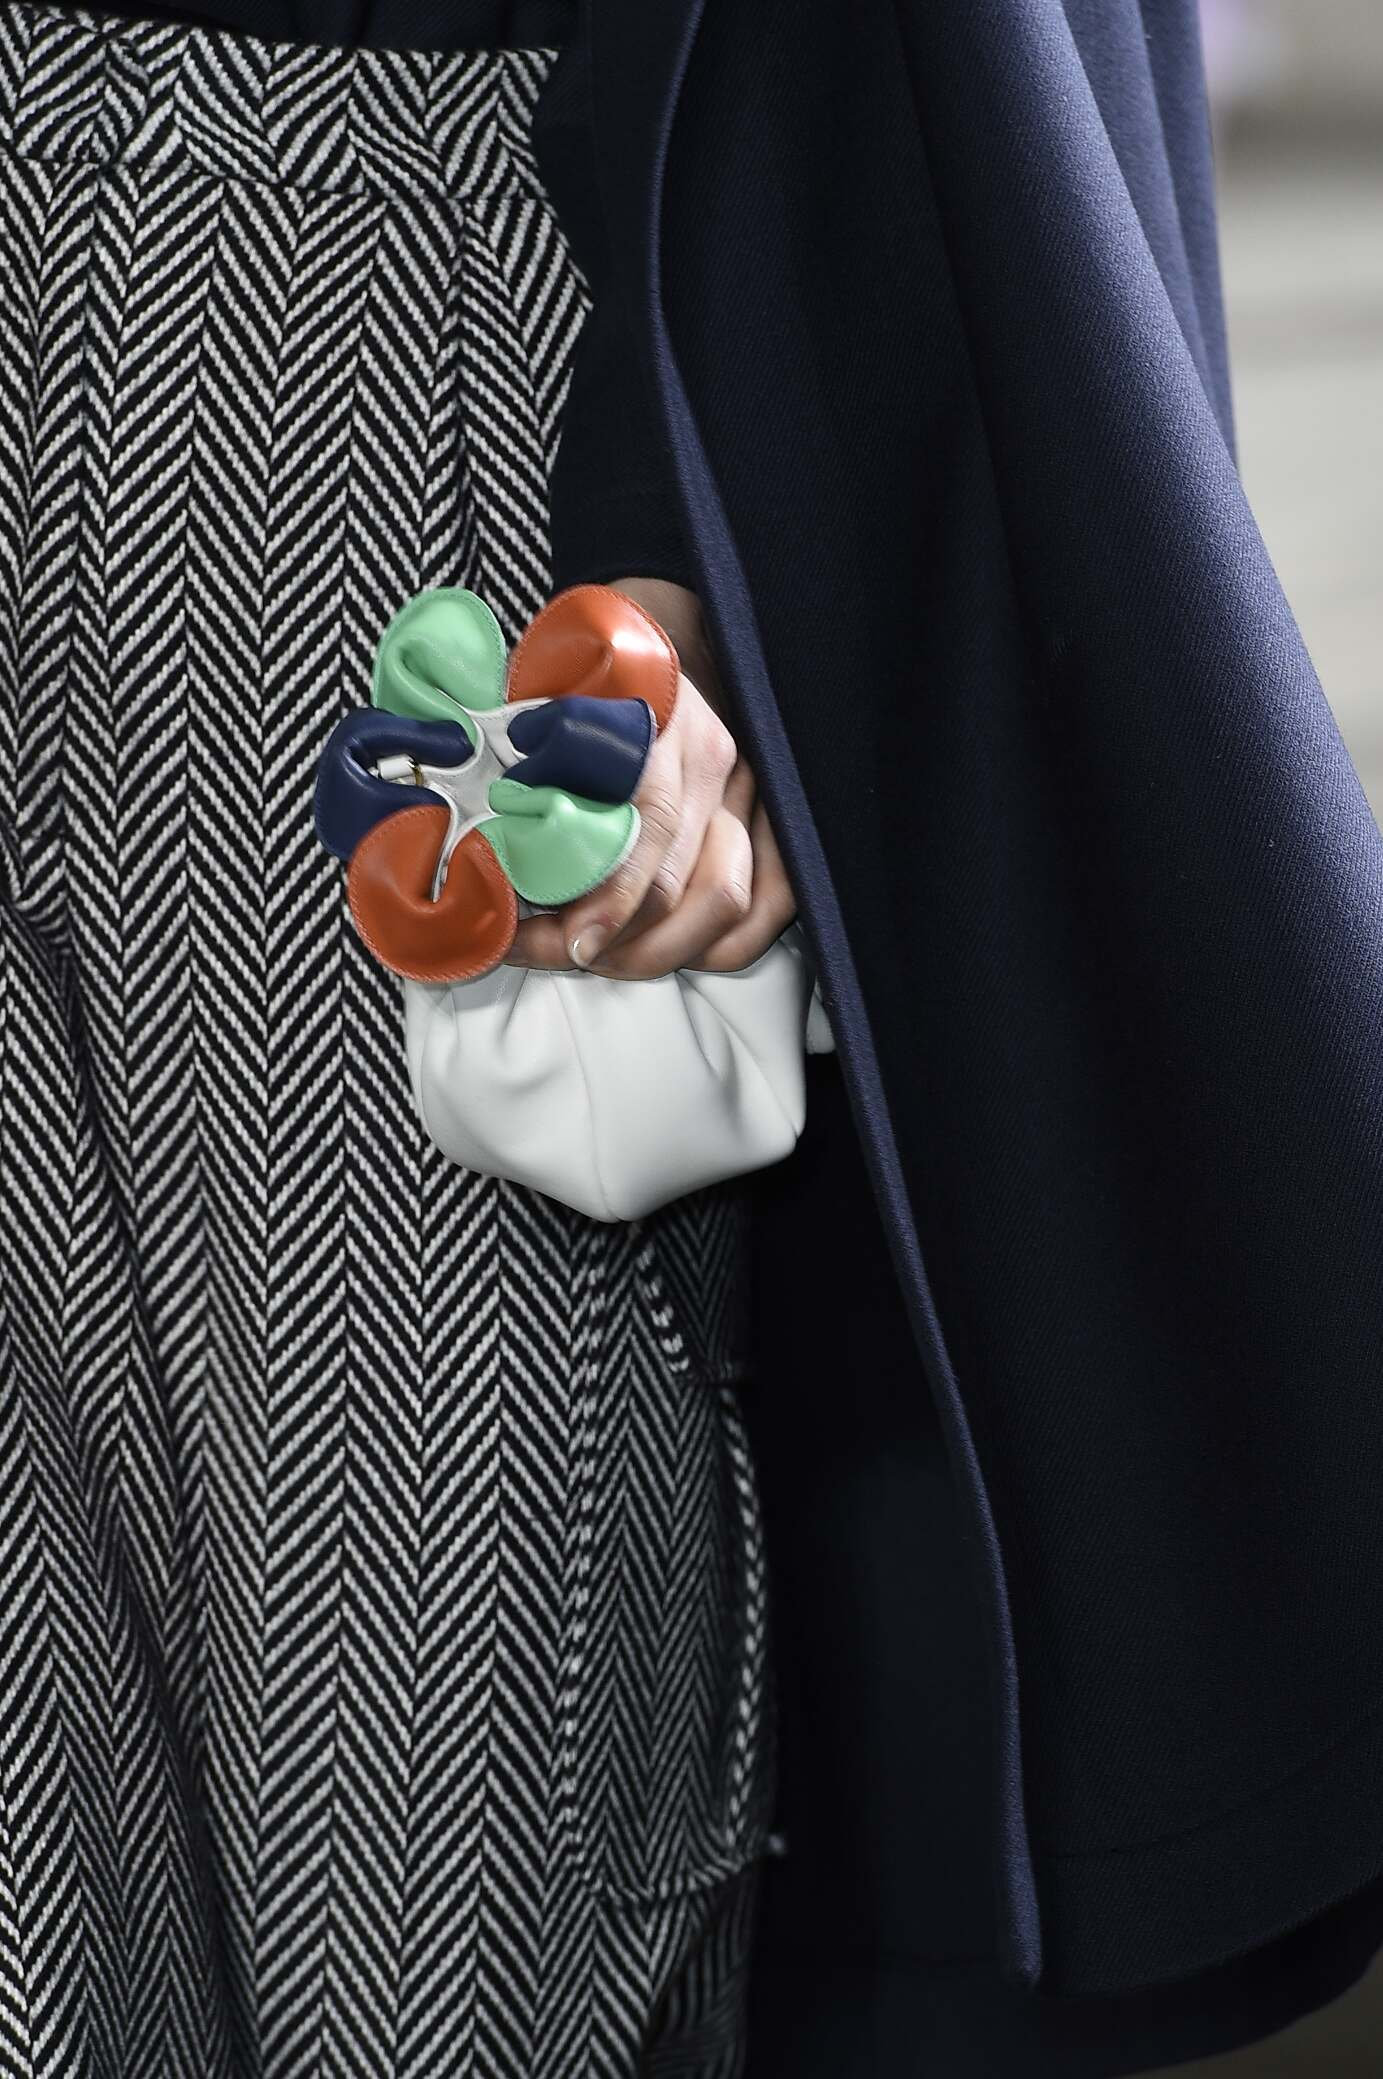 Fashion Winter Trends 2015 2016 Loewe Bag Detail